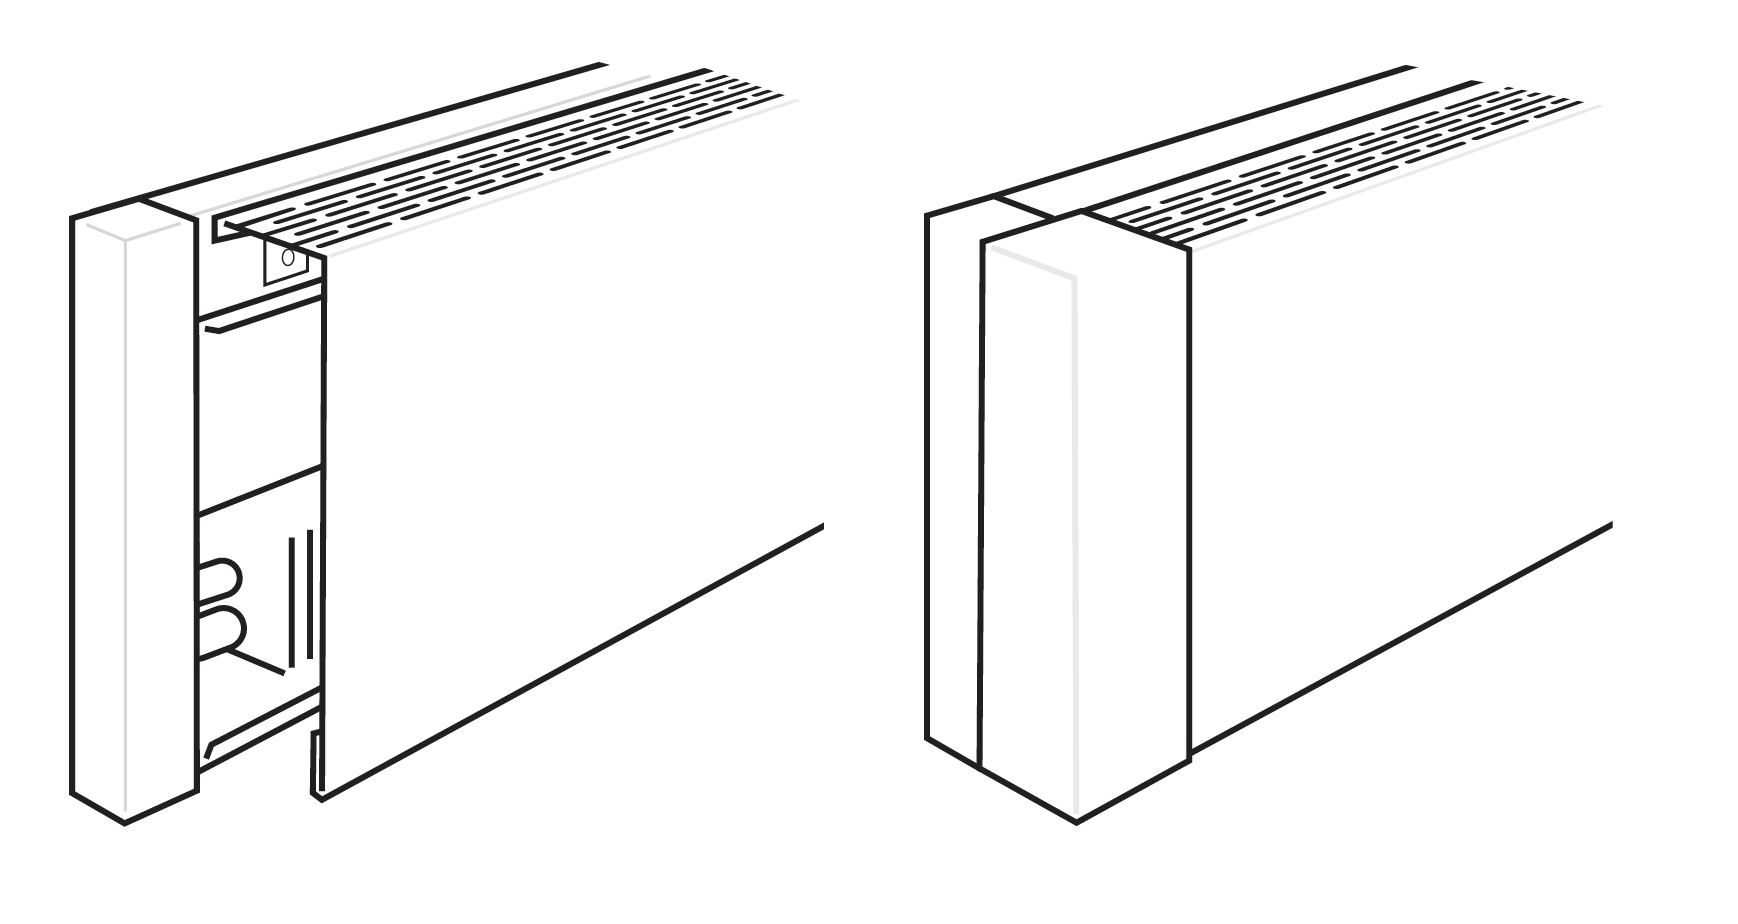 large-element-depth-metal-baseboard-covers4.png